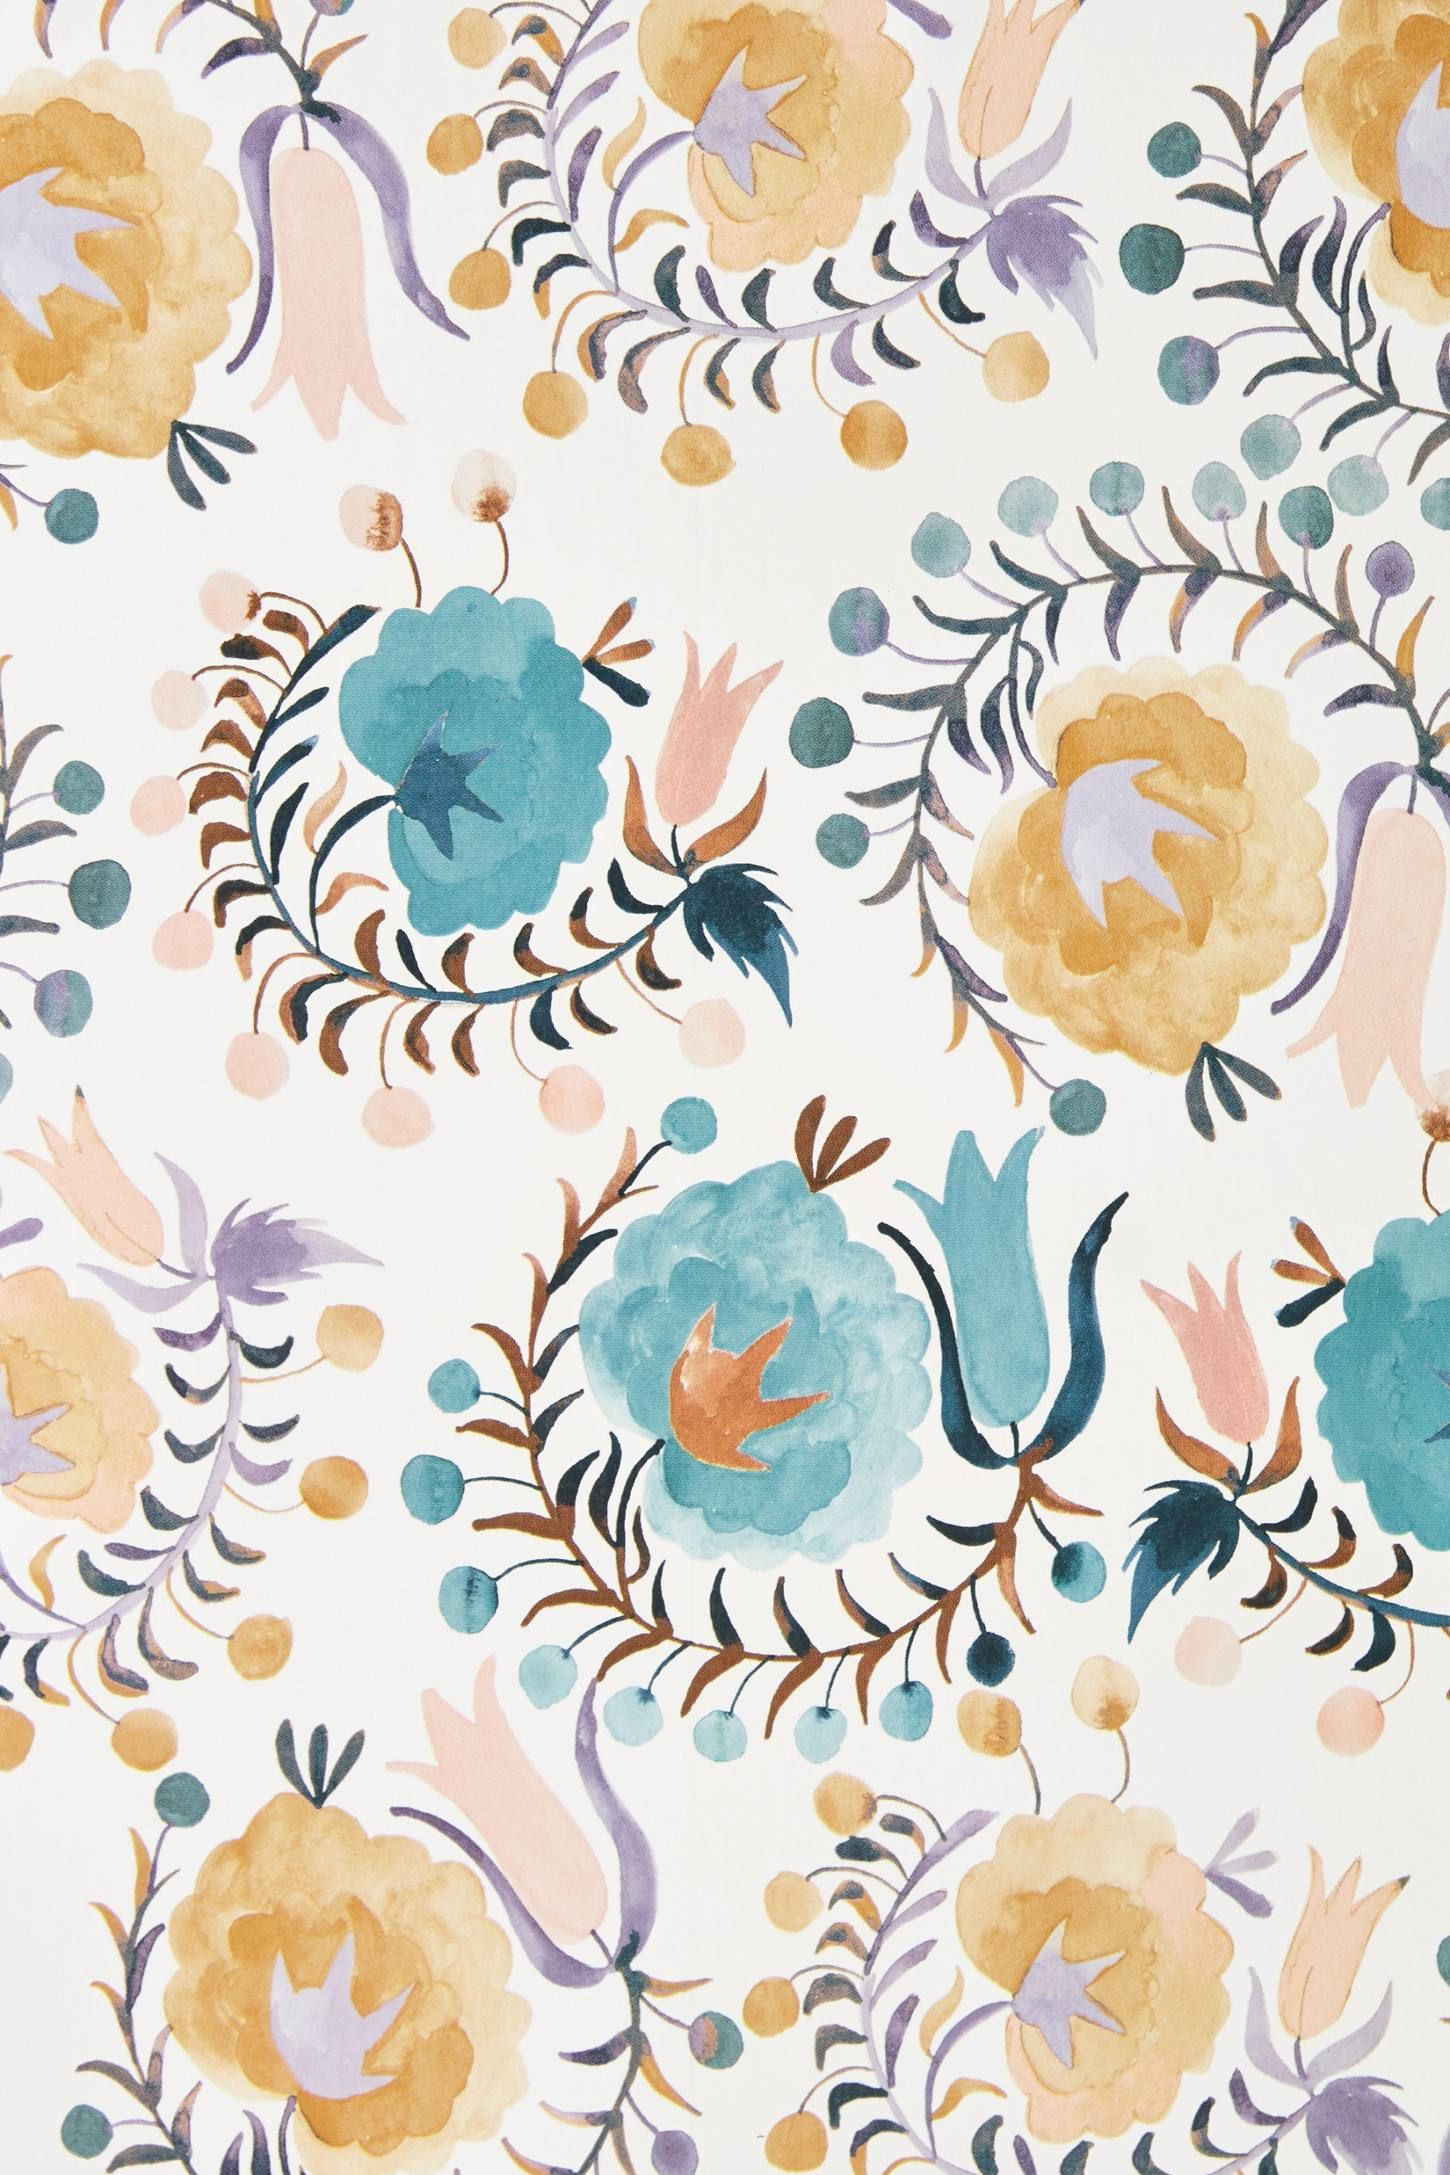 Anthropologie Meze Wallpaper Peony Wallpaper Floral Wallpaper Anthropologie Wallpaper